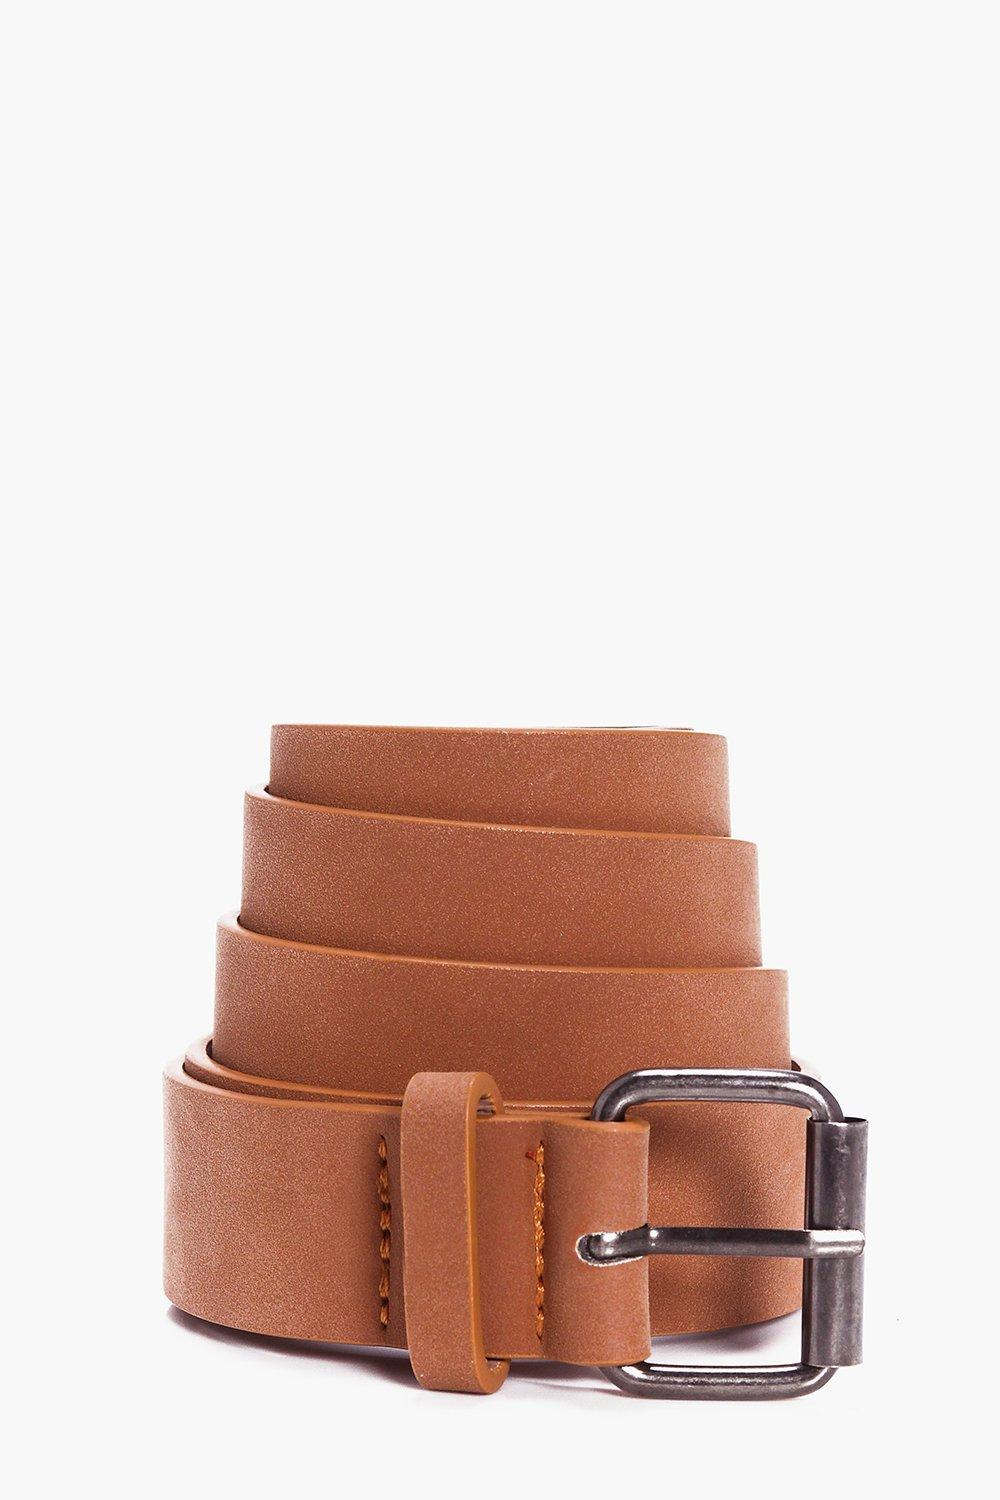 Leather Belt With Metal Buckle - dark brown - Faux